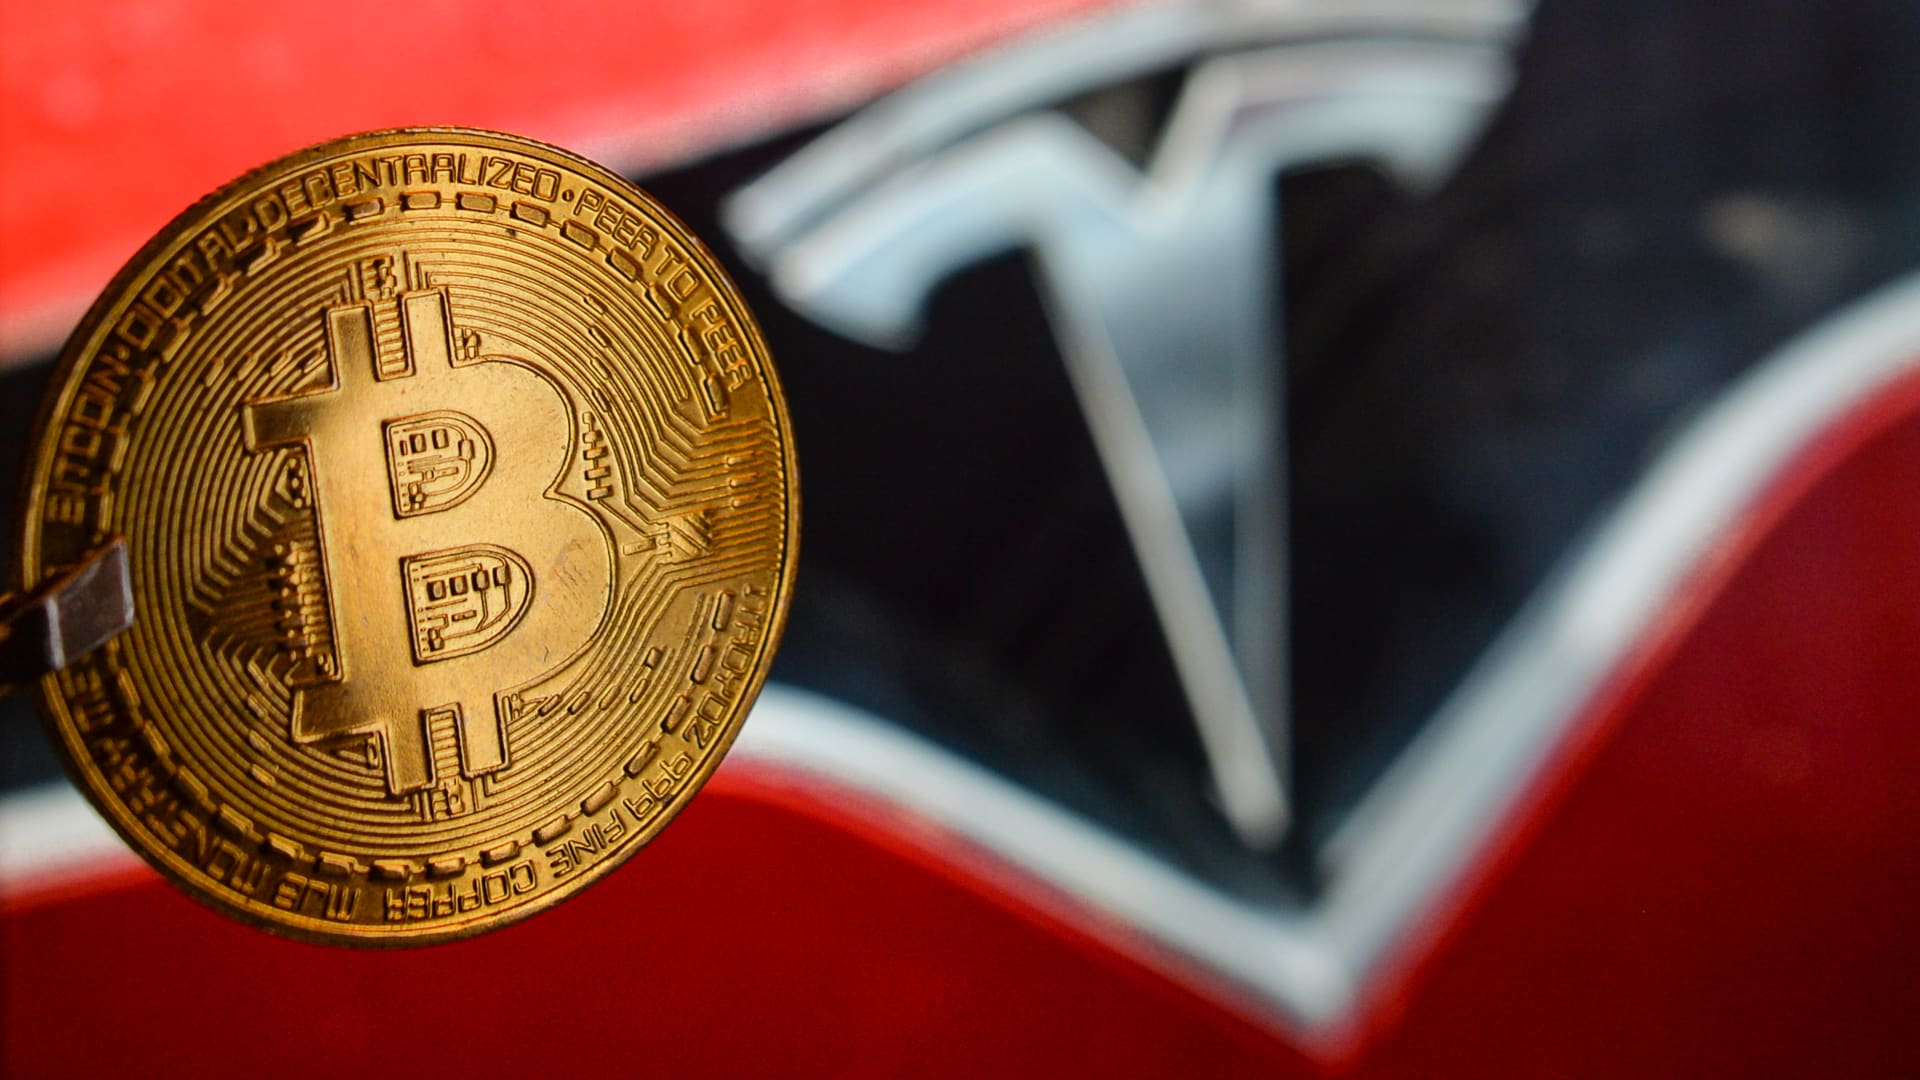 Tesla, led by Elon Musk, confirmed that it purchased about $ 1.5 billion in bitcoin in January and expects to start accepting it as a payment in the future.